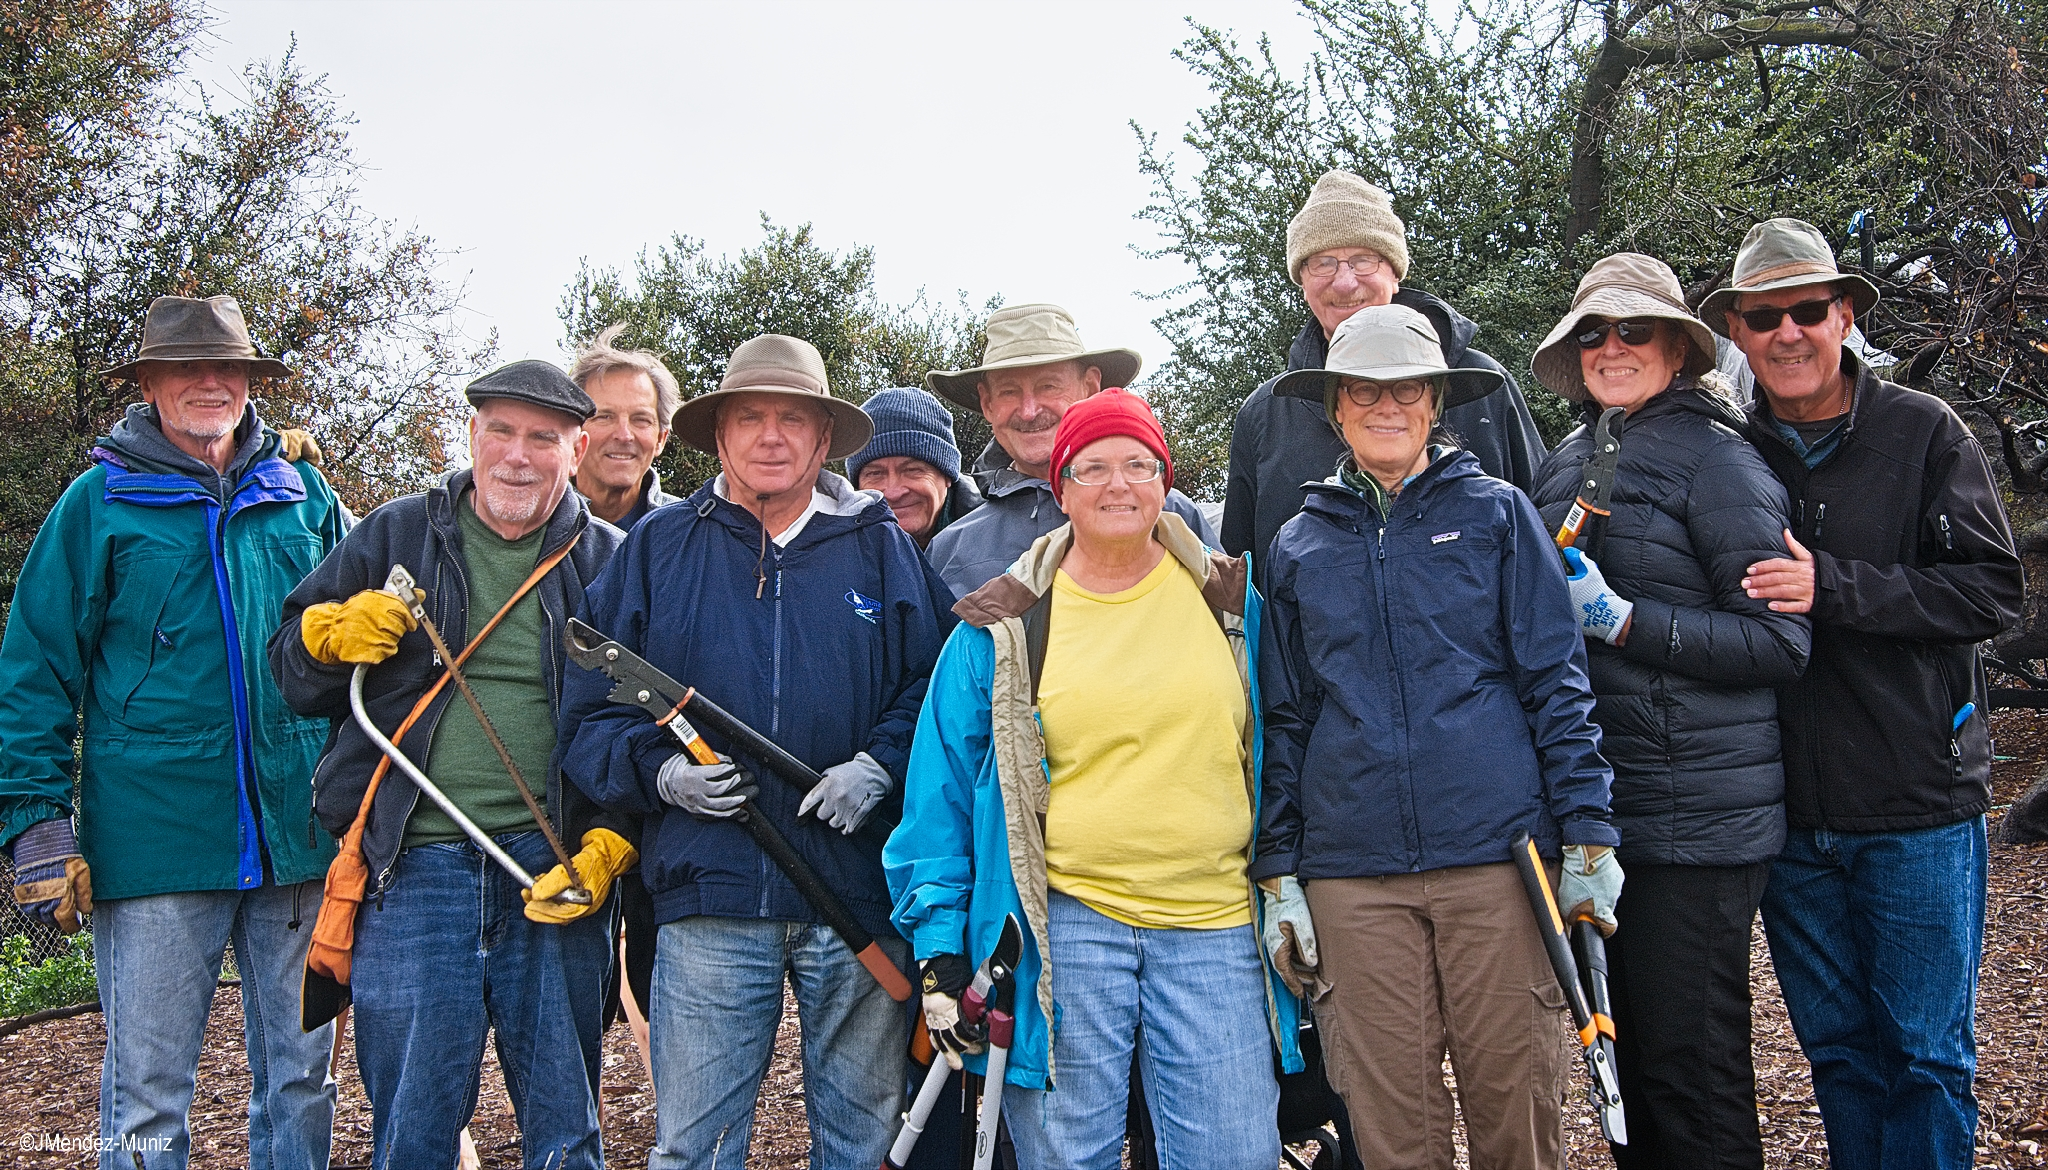 THE GREAT  DHUNI  STICK HARVEST volunteers at Meher Mount on January 12, 2019. (Left to right) Jim Whedon, David Springhorn, Kyle Morrisson, Jim Whitson, David Trombley, Sam Ervin, Cassandra Bramucci, Fred Stankus, Kristina Somma, Agnes Montano, and Juan Mendez. Margaret Magnus is taking the photo, and Robert Turnage is at the Visitor Center greeting guests. Lisa Morrison, Kristen Tarpey, and Mike Tarpey came later in the afternoon.